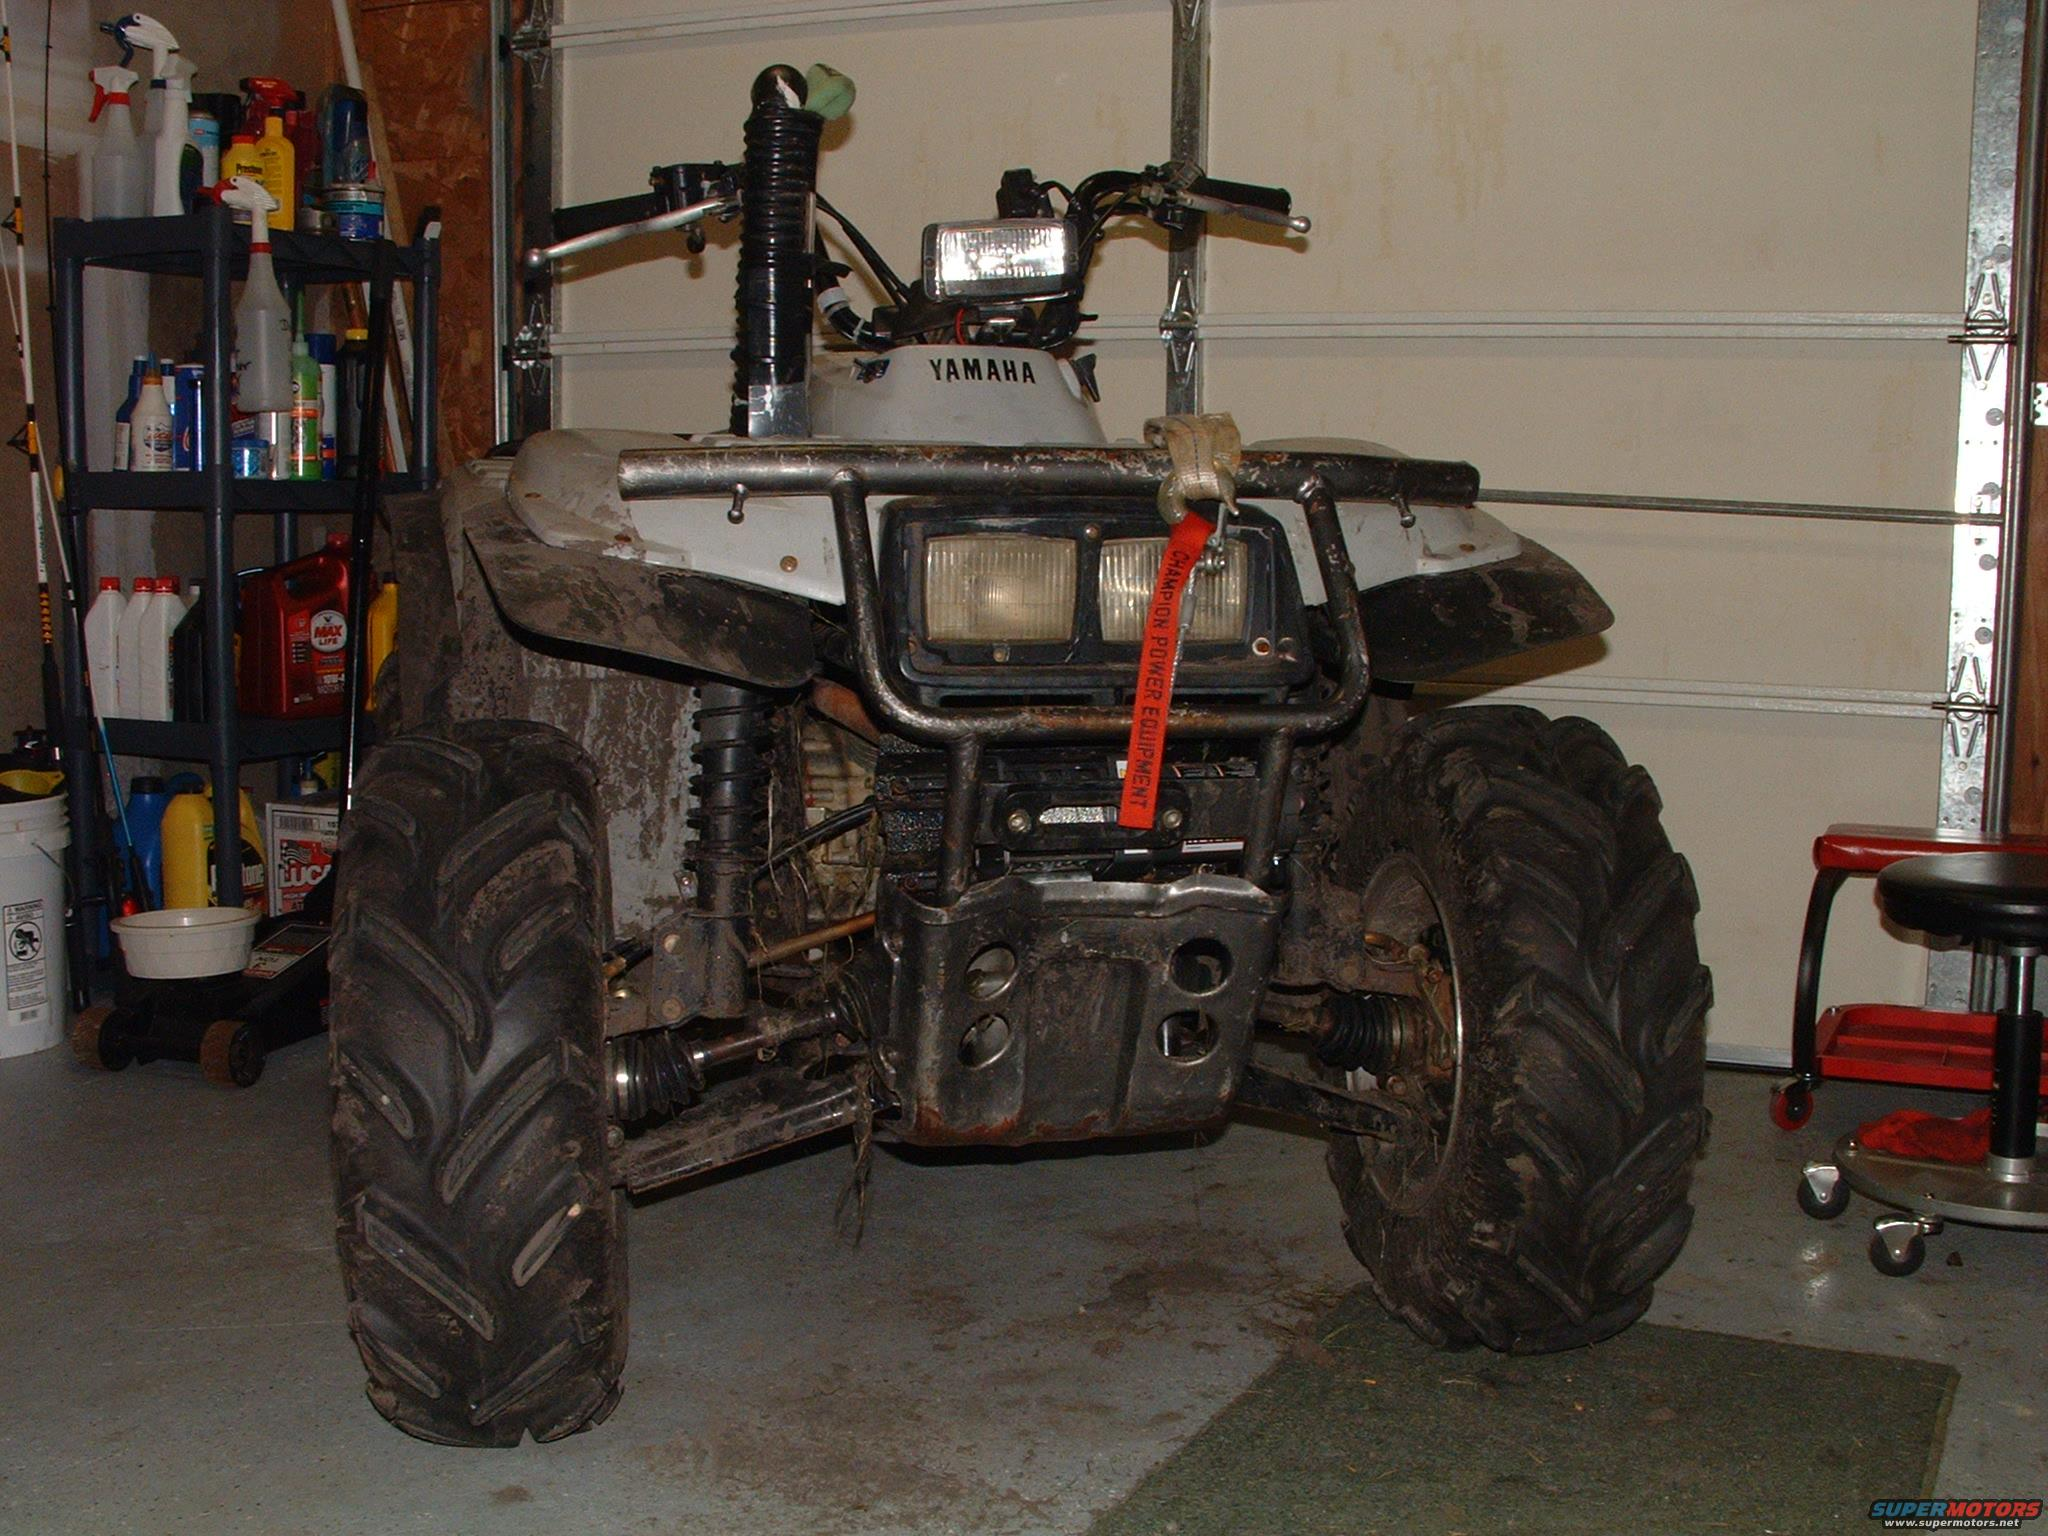 1994 Yamaha Timberwolf 2wd Yfb250f Oem Parts Babbitts 1996 Yfb250 Wiring Diagram Beater Picture